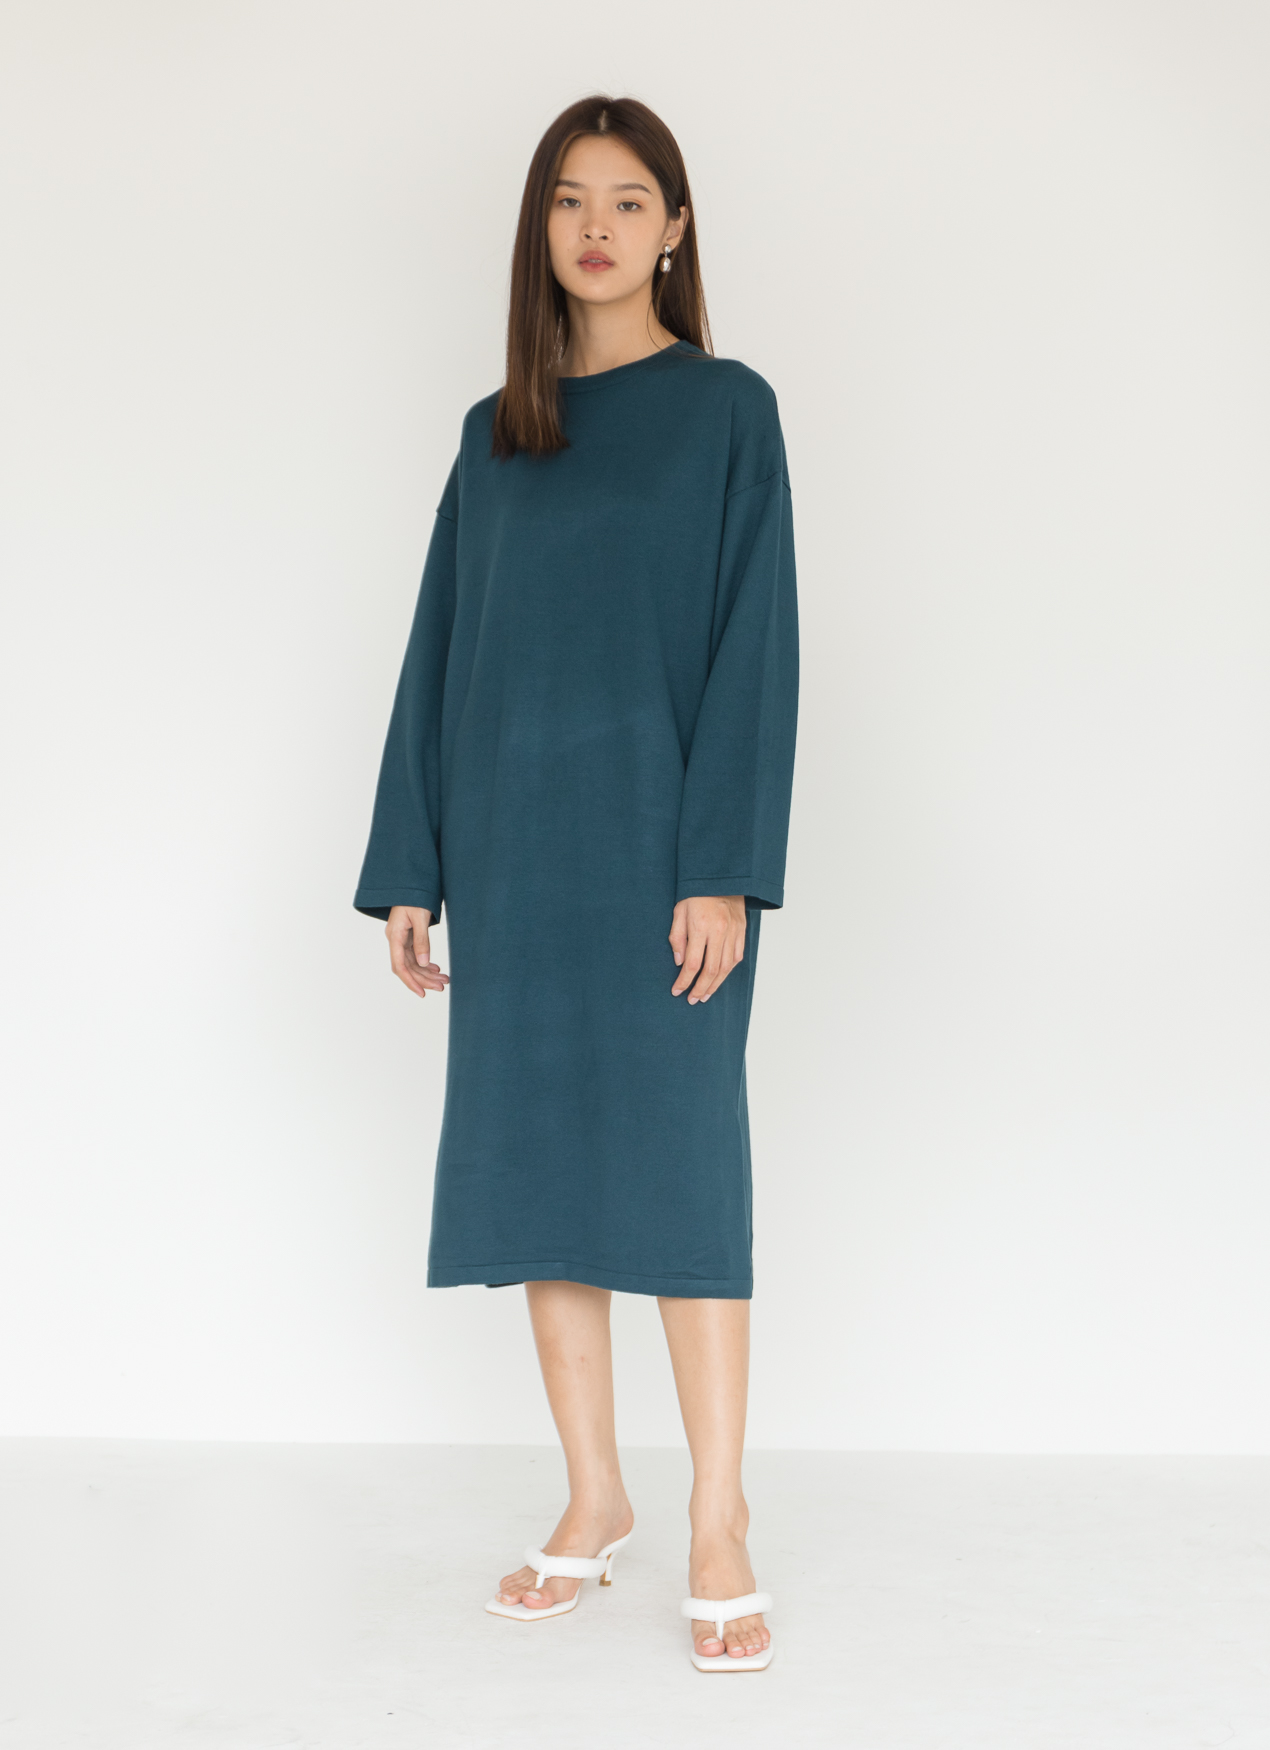 BOWN Ludovic Dress - Green